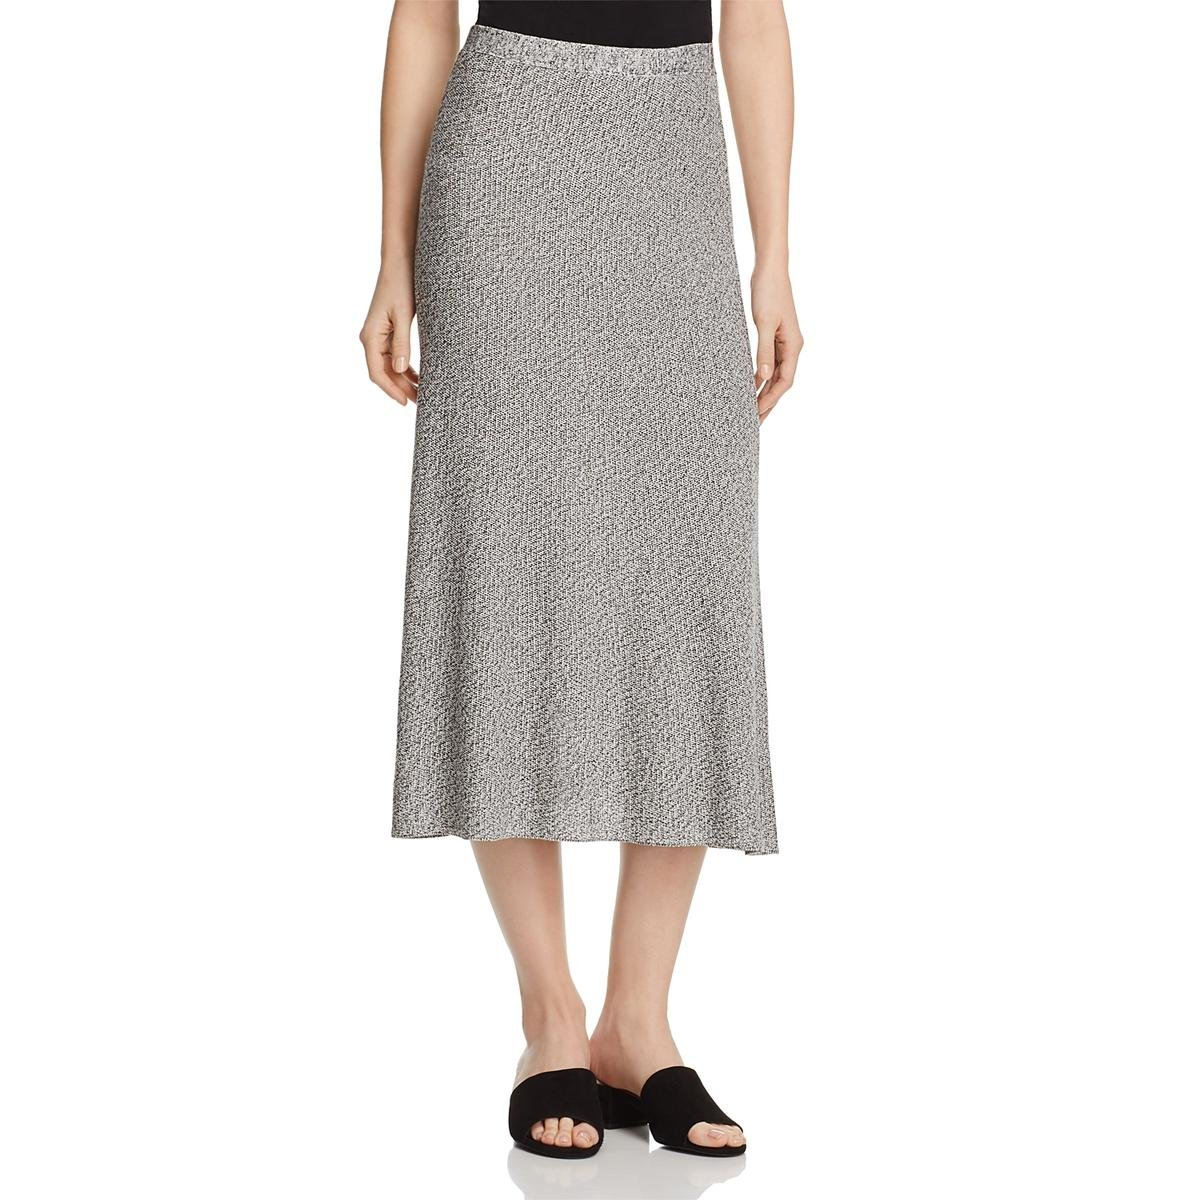 Eileen Fisher Womens Tencel Flare Flare Skirt B/W XL by Eileen Fisher (Image #1)